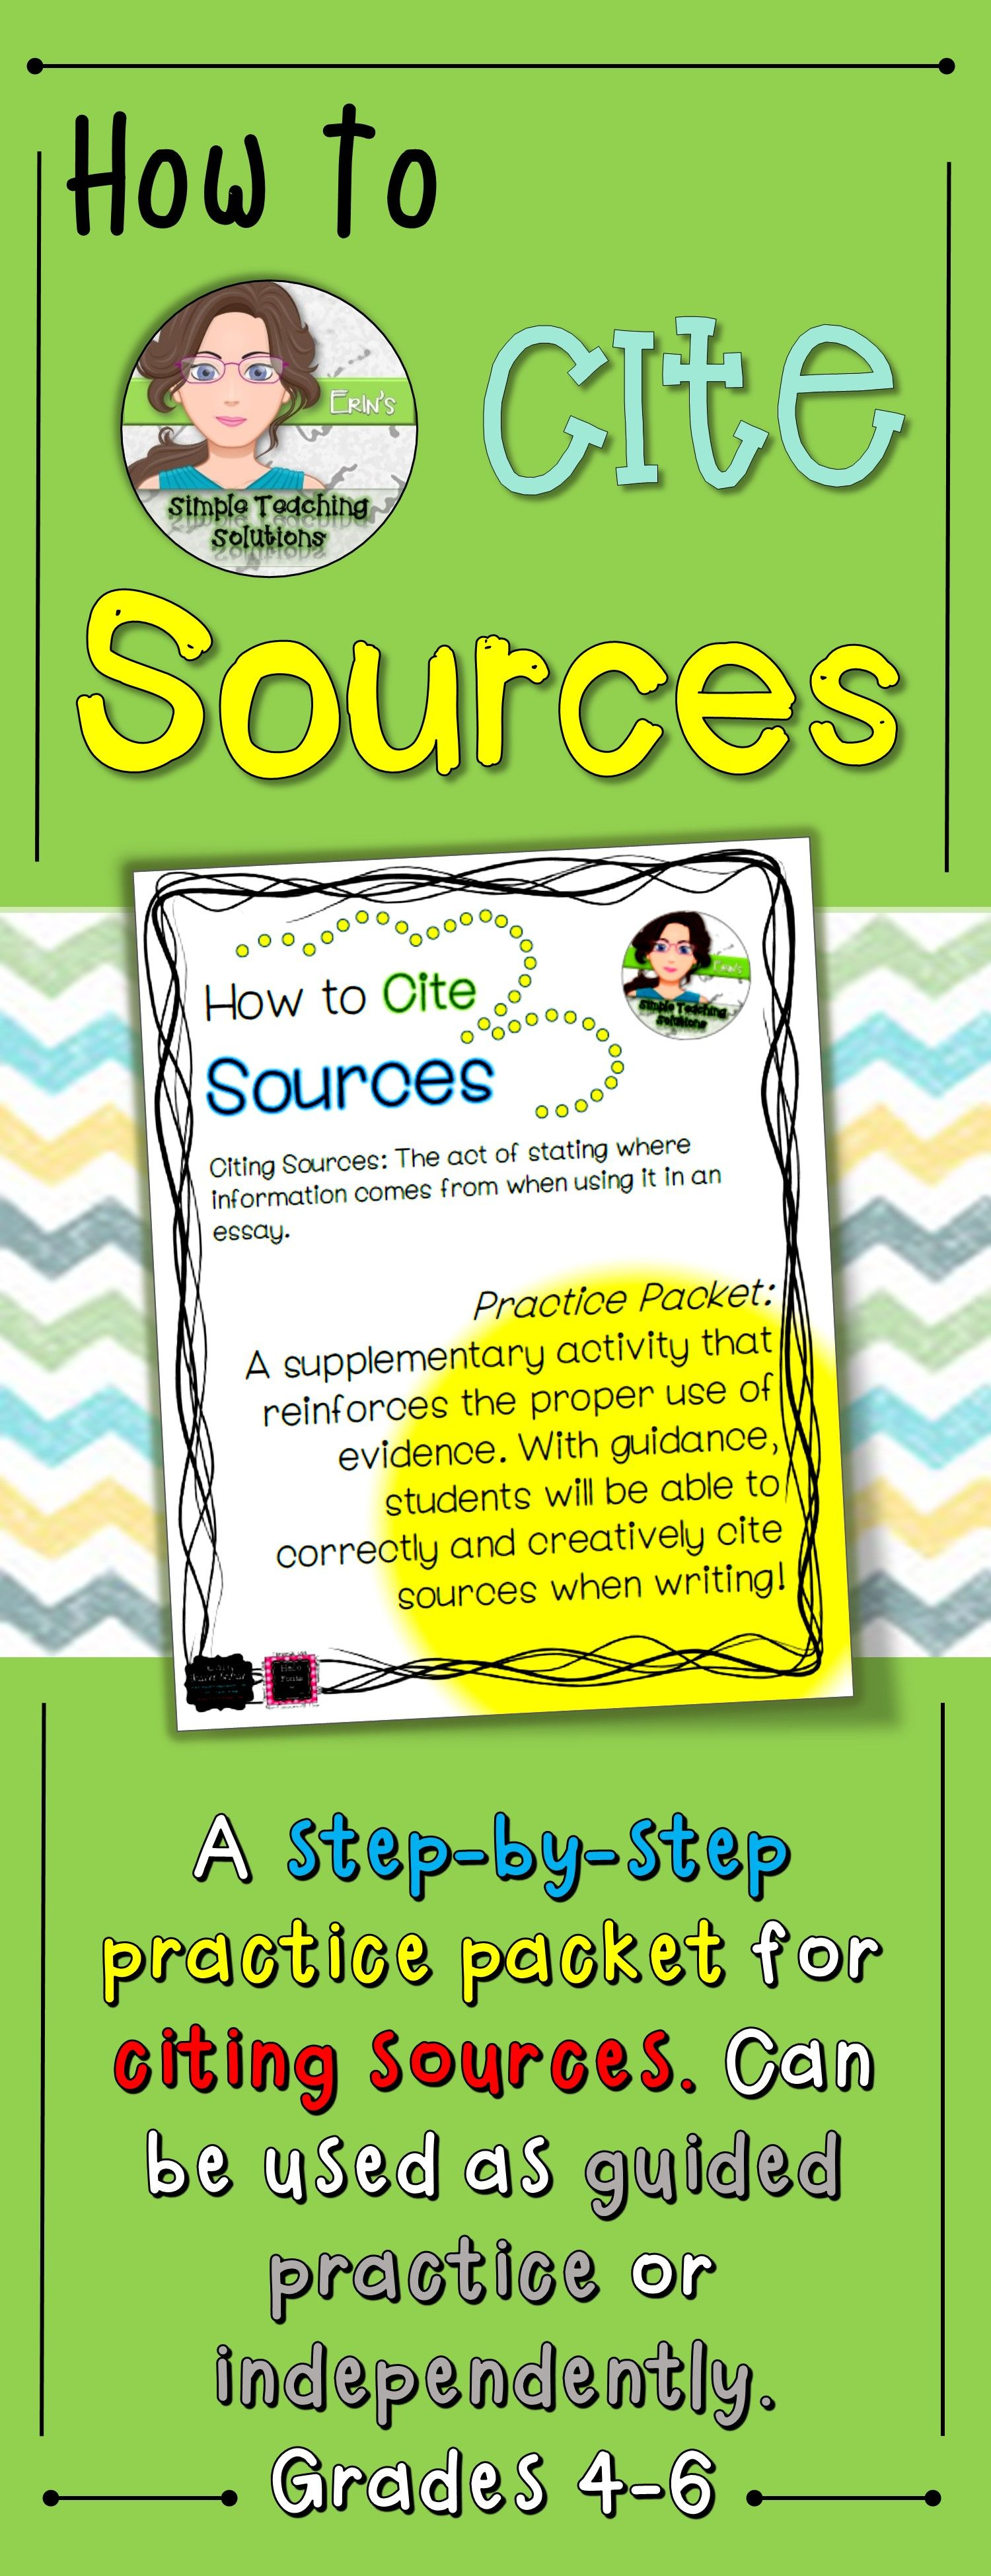 How To Cite Sources Practice Packet